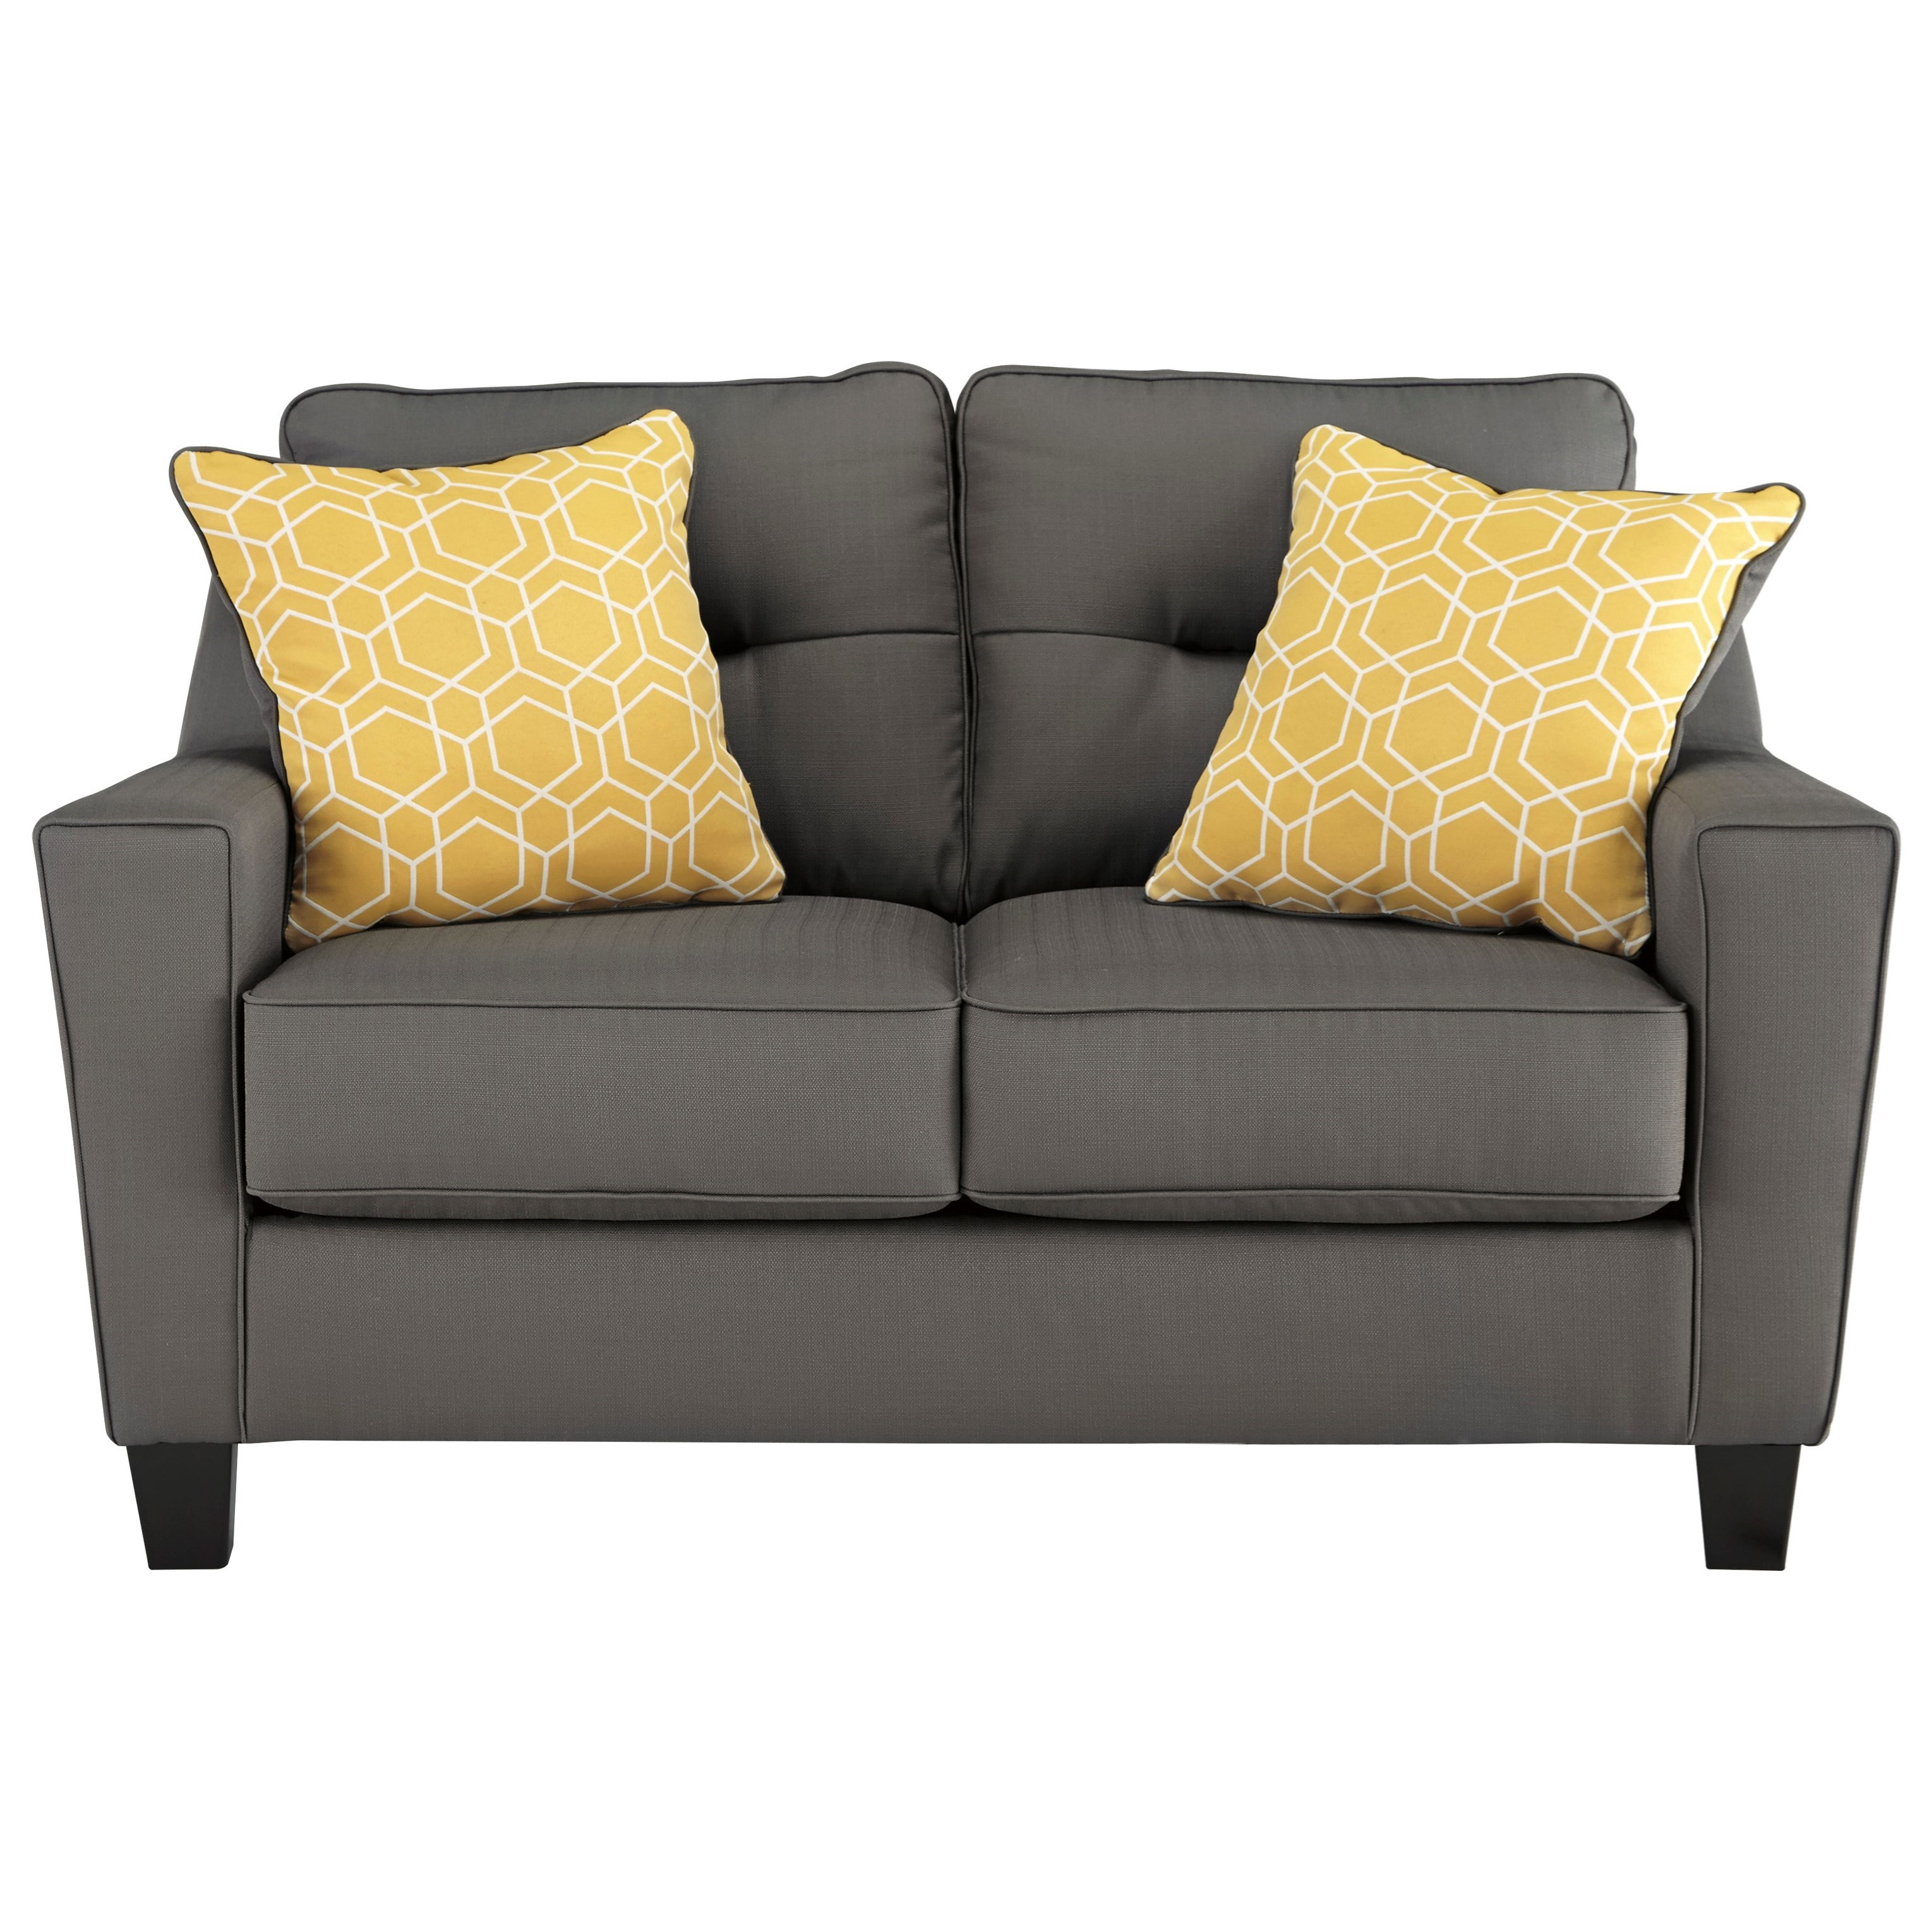 Benchcraft Forsan Nuvella Contemporary Loveseat In Performance Fabric Miskelly Furniture